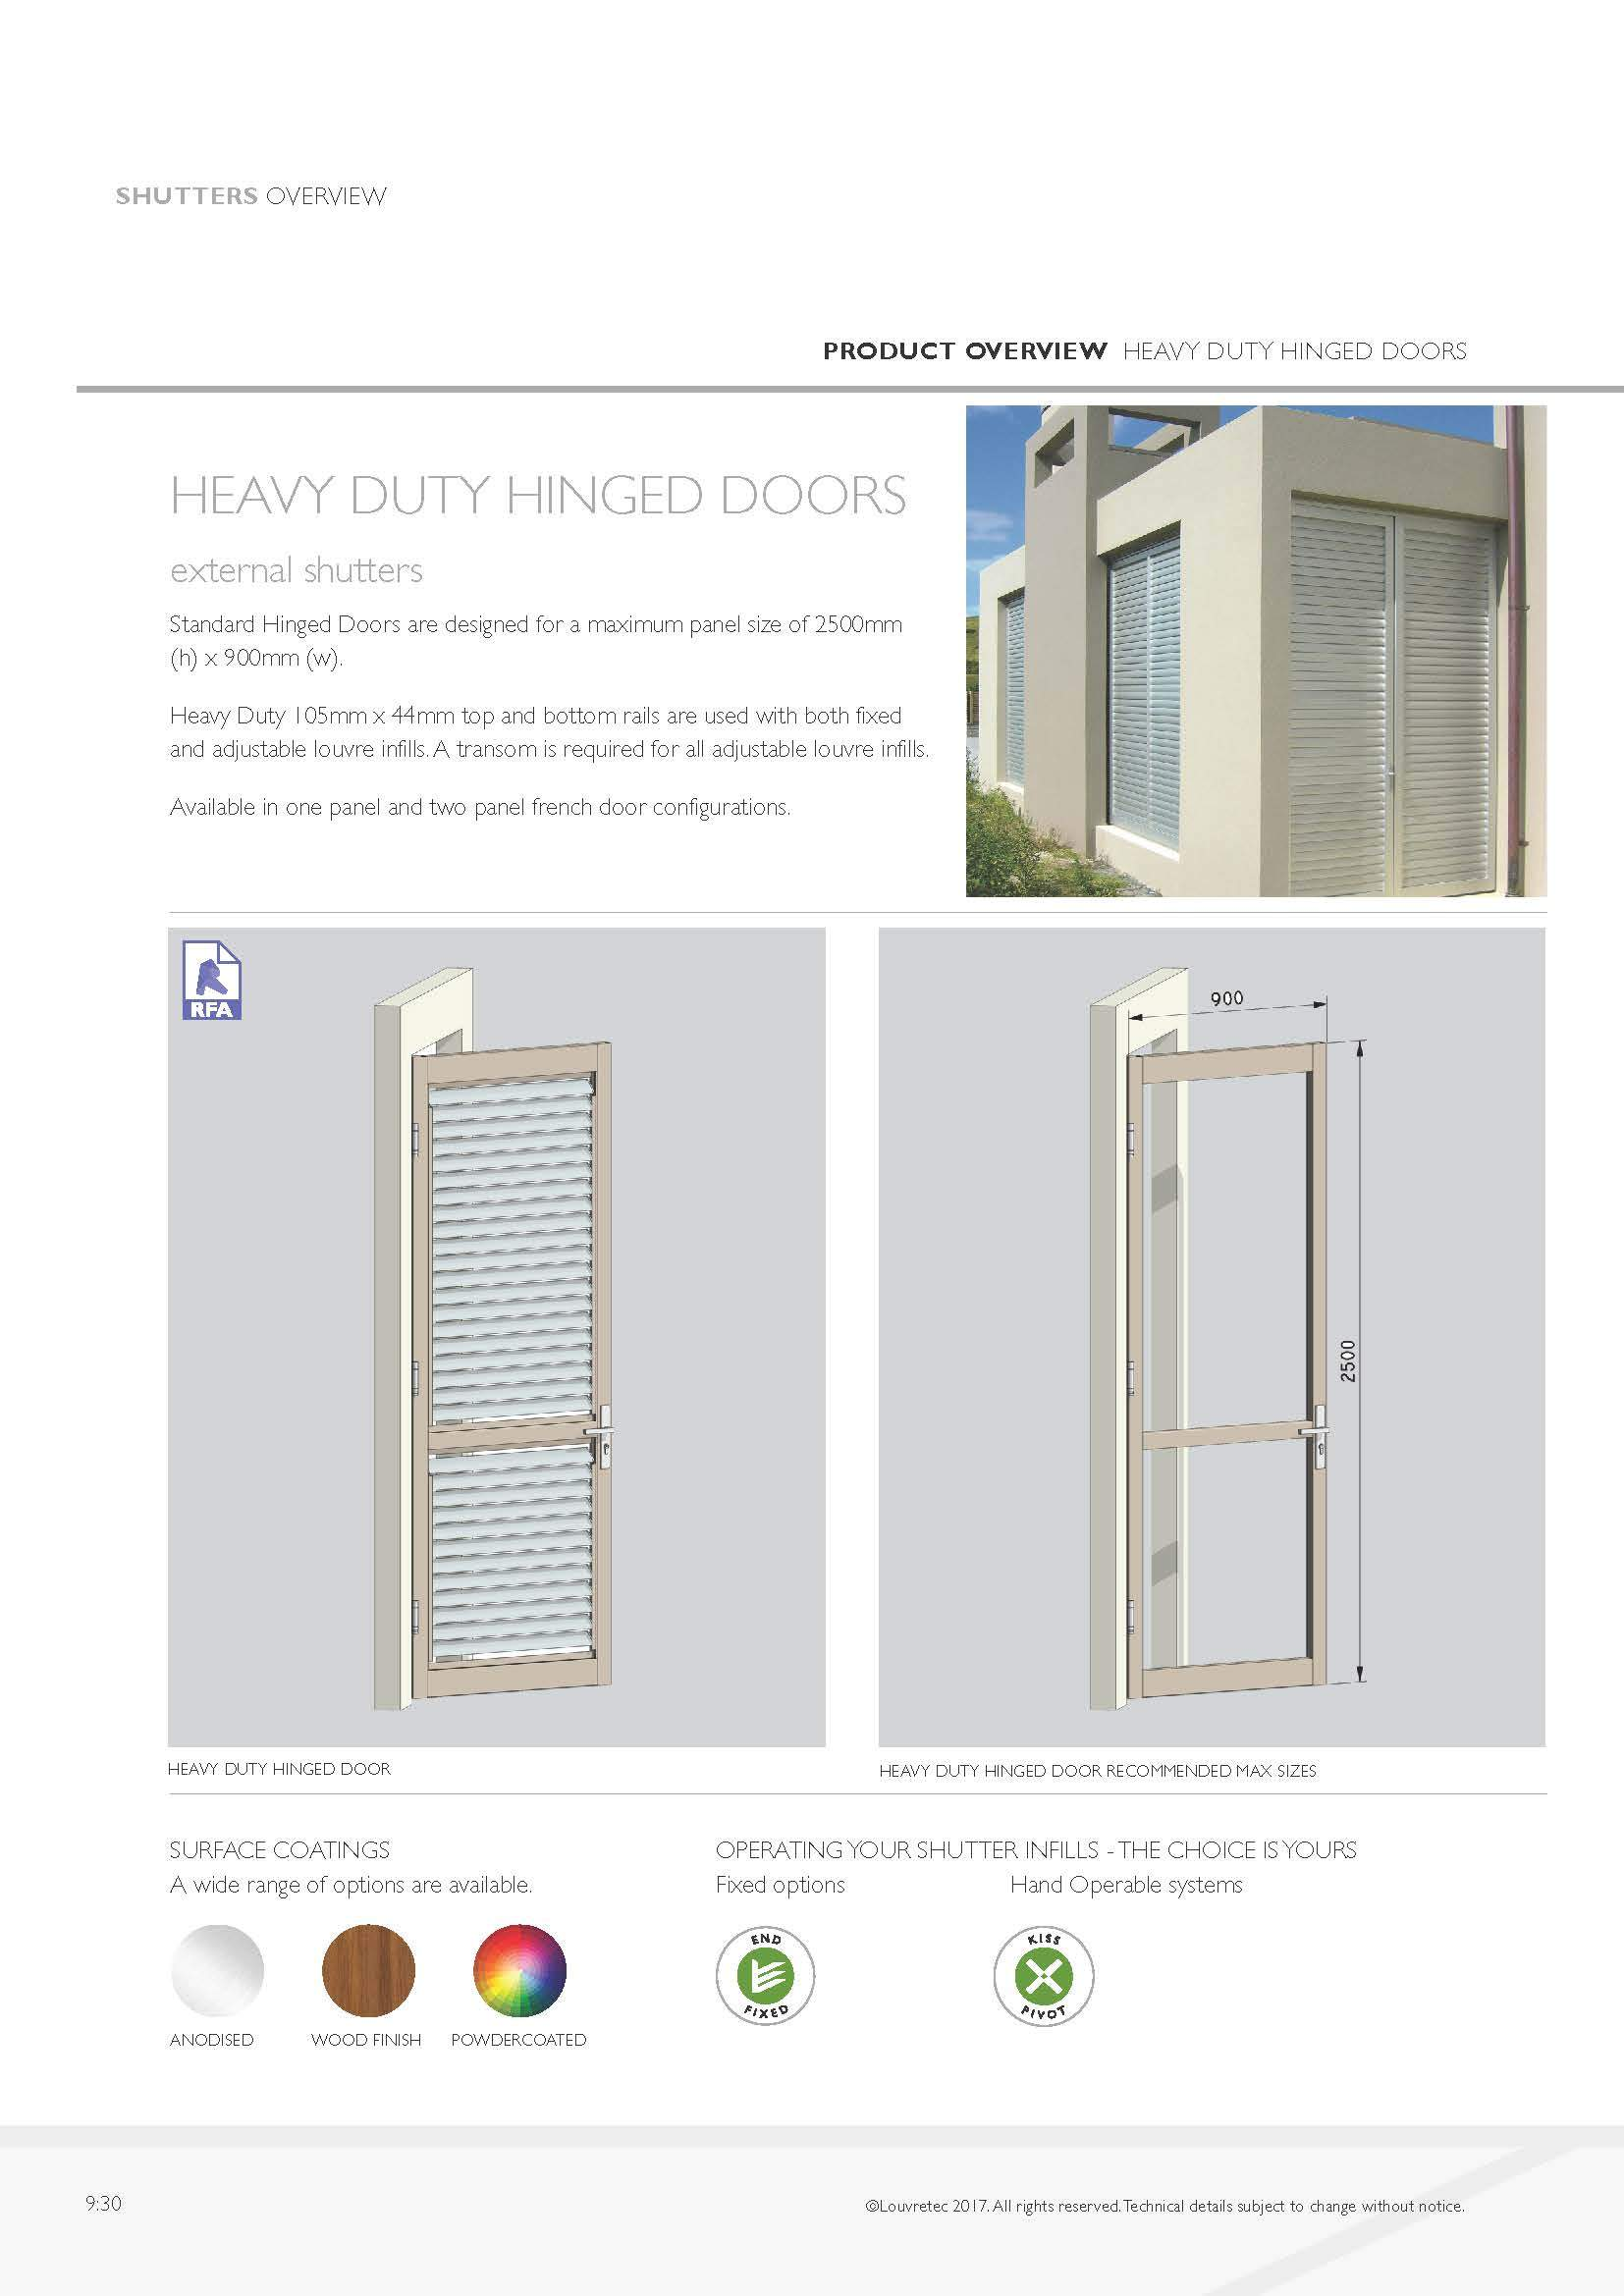 Heavy Duty Hinged Doors 9.30